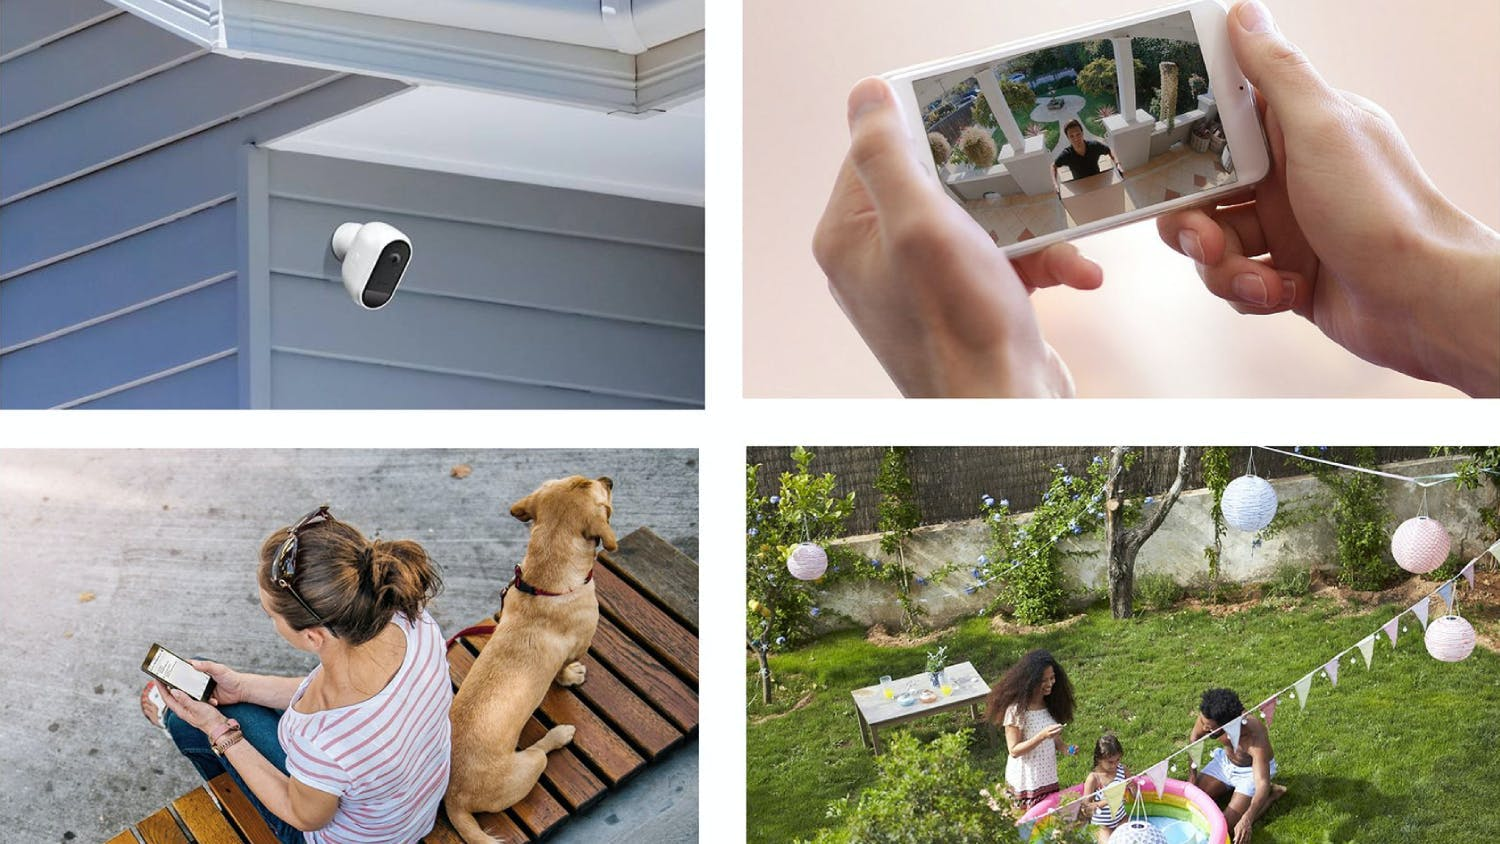 Swann SWIFI 1080p Wire-Free Outdoor Security Camera White - 1 Pack